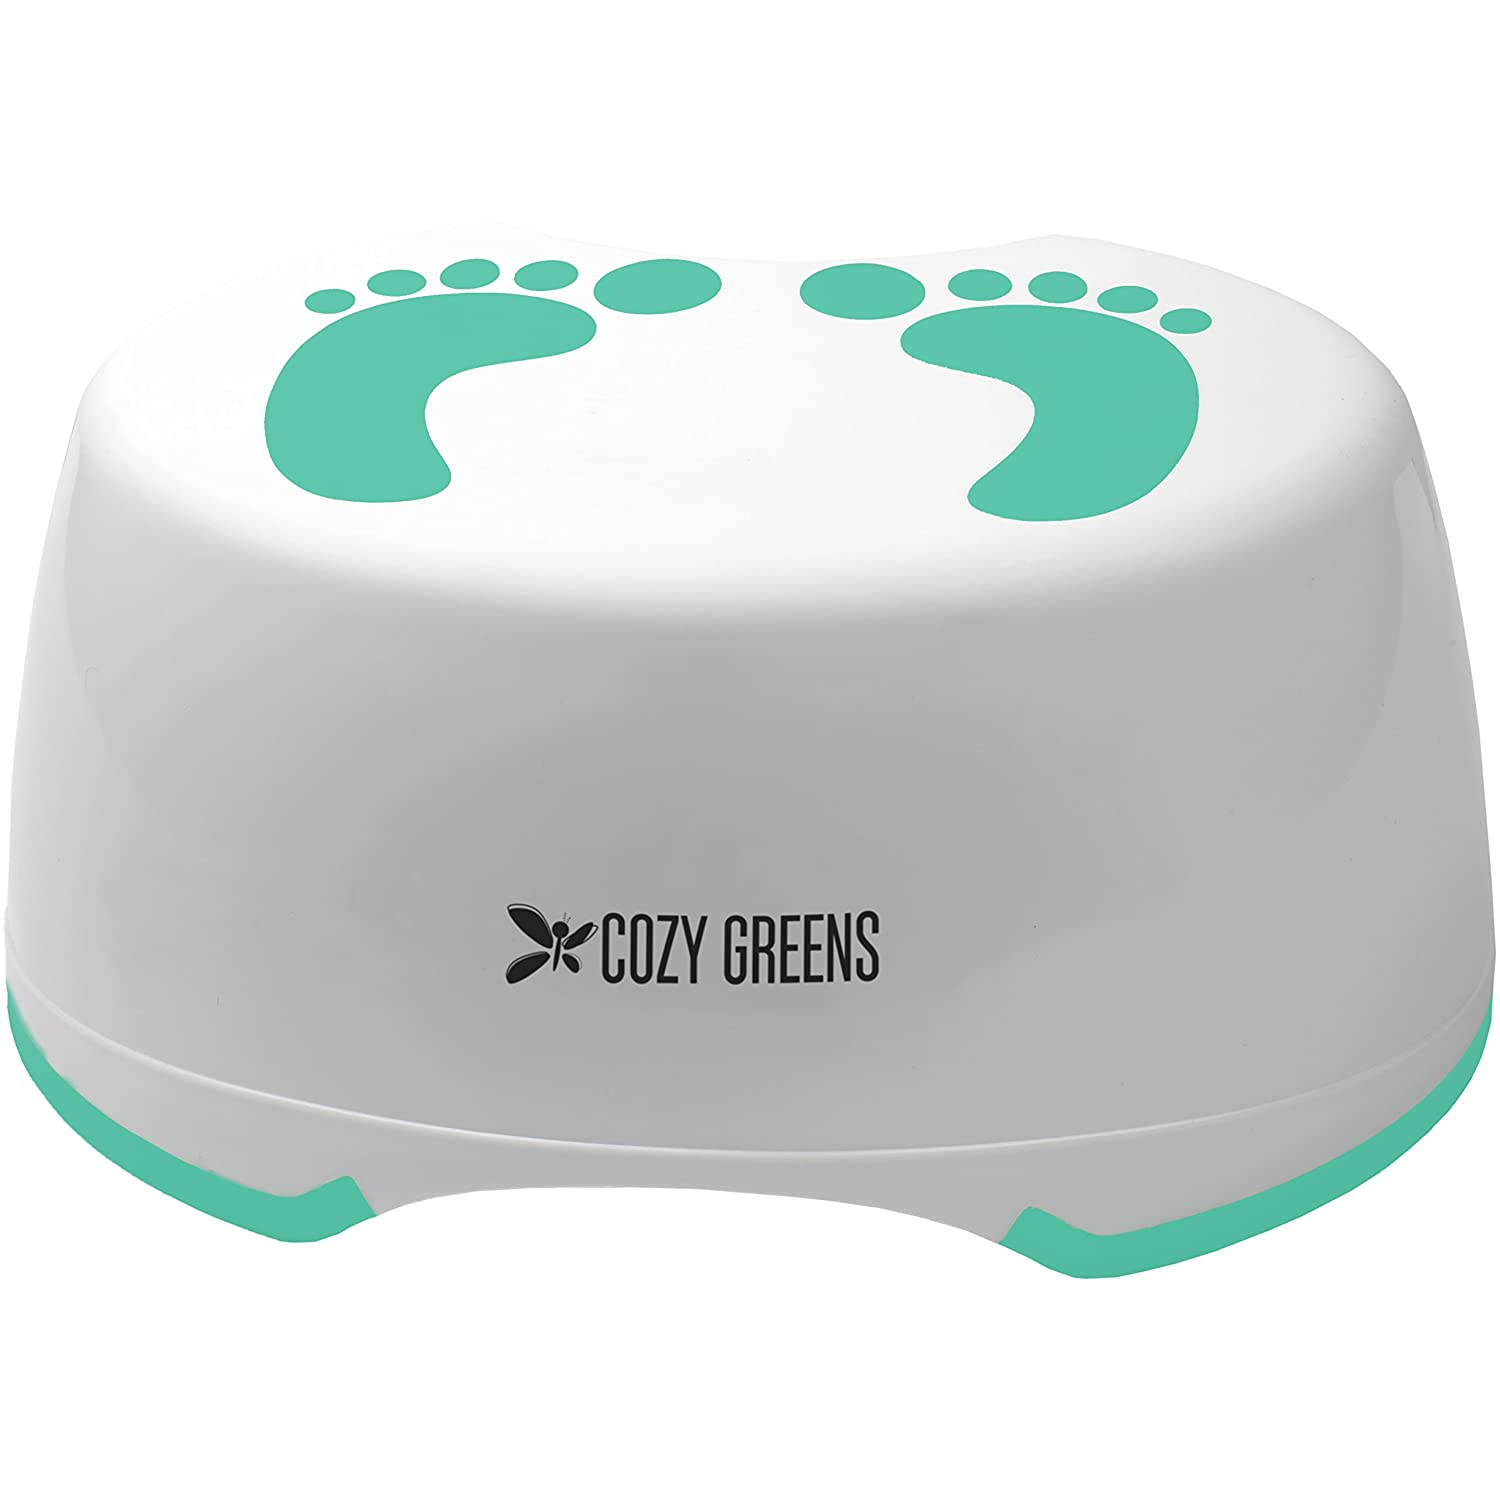 Amazon.com  Step Stool for Children | Anti-Slip Top and Bottom | Easy Hygienic Cleaning | FREE Potty Training eBook | Perfect height for Toddler Toilet ...  sc 1 st  Amazon.com & Amazon.com : Step Stool for Children | Anti-Slip Top and Bottom ... islam-shia.org